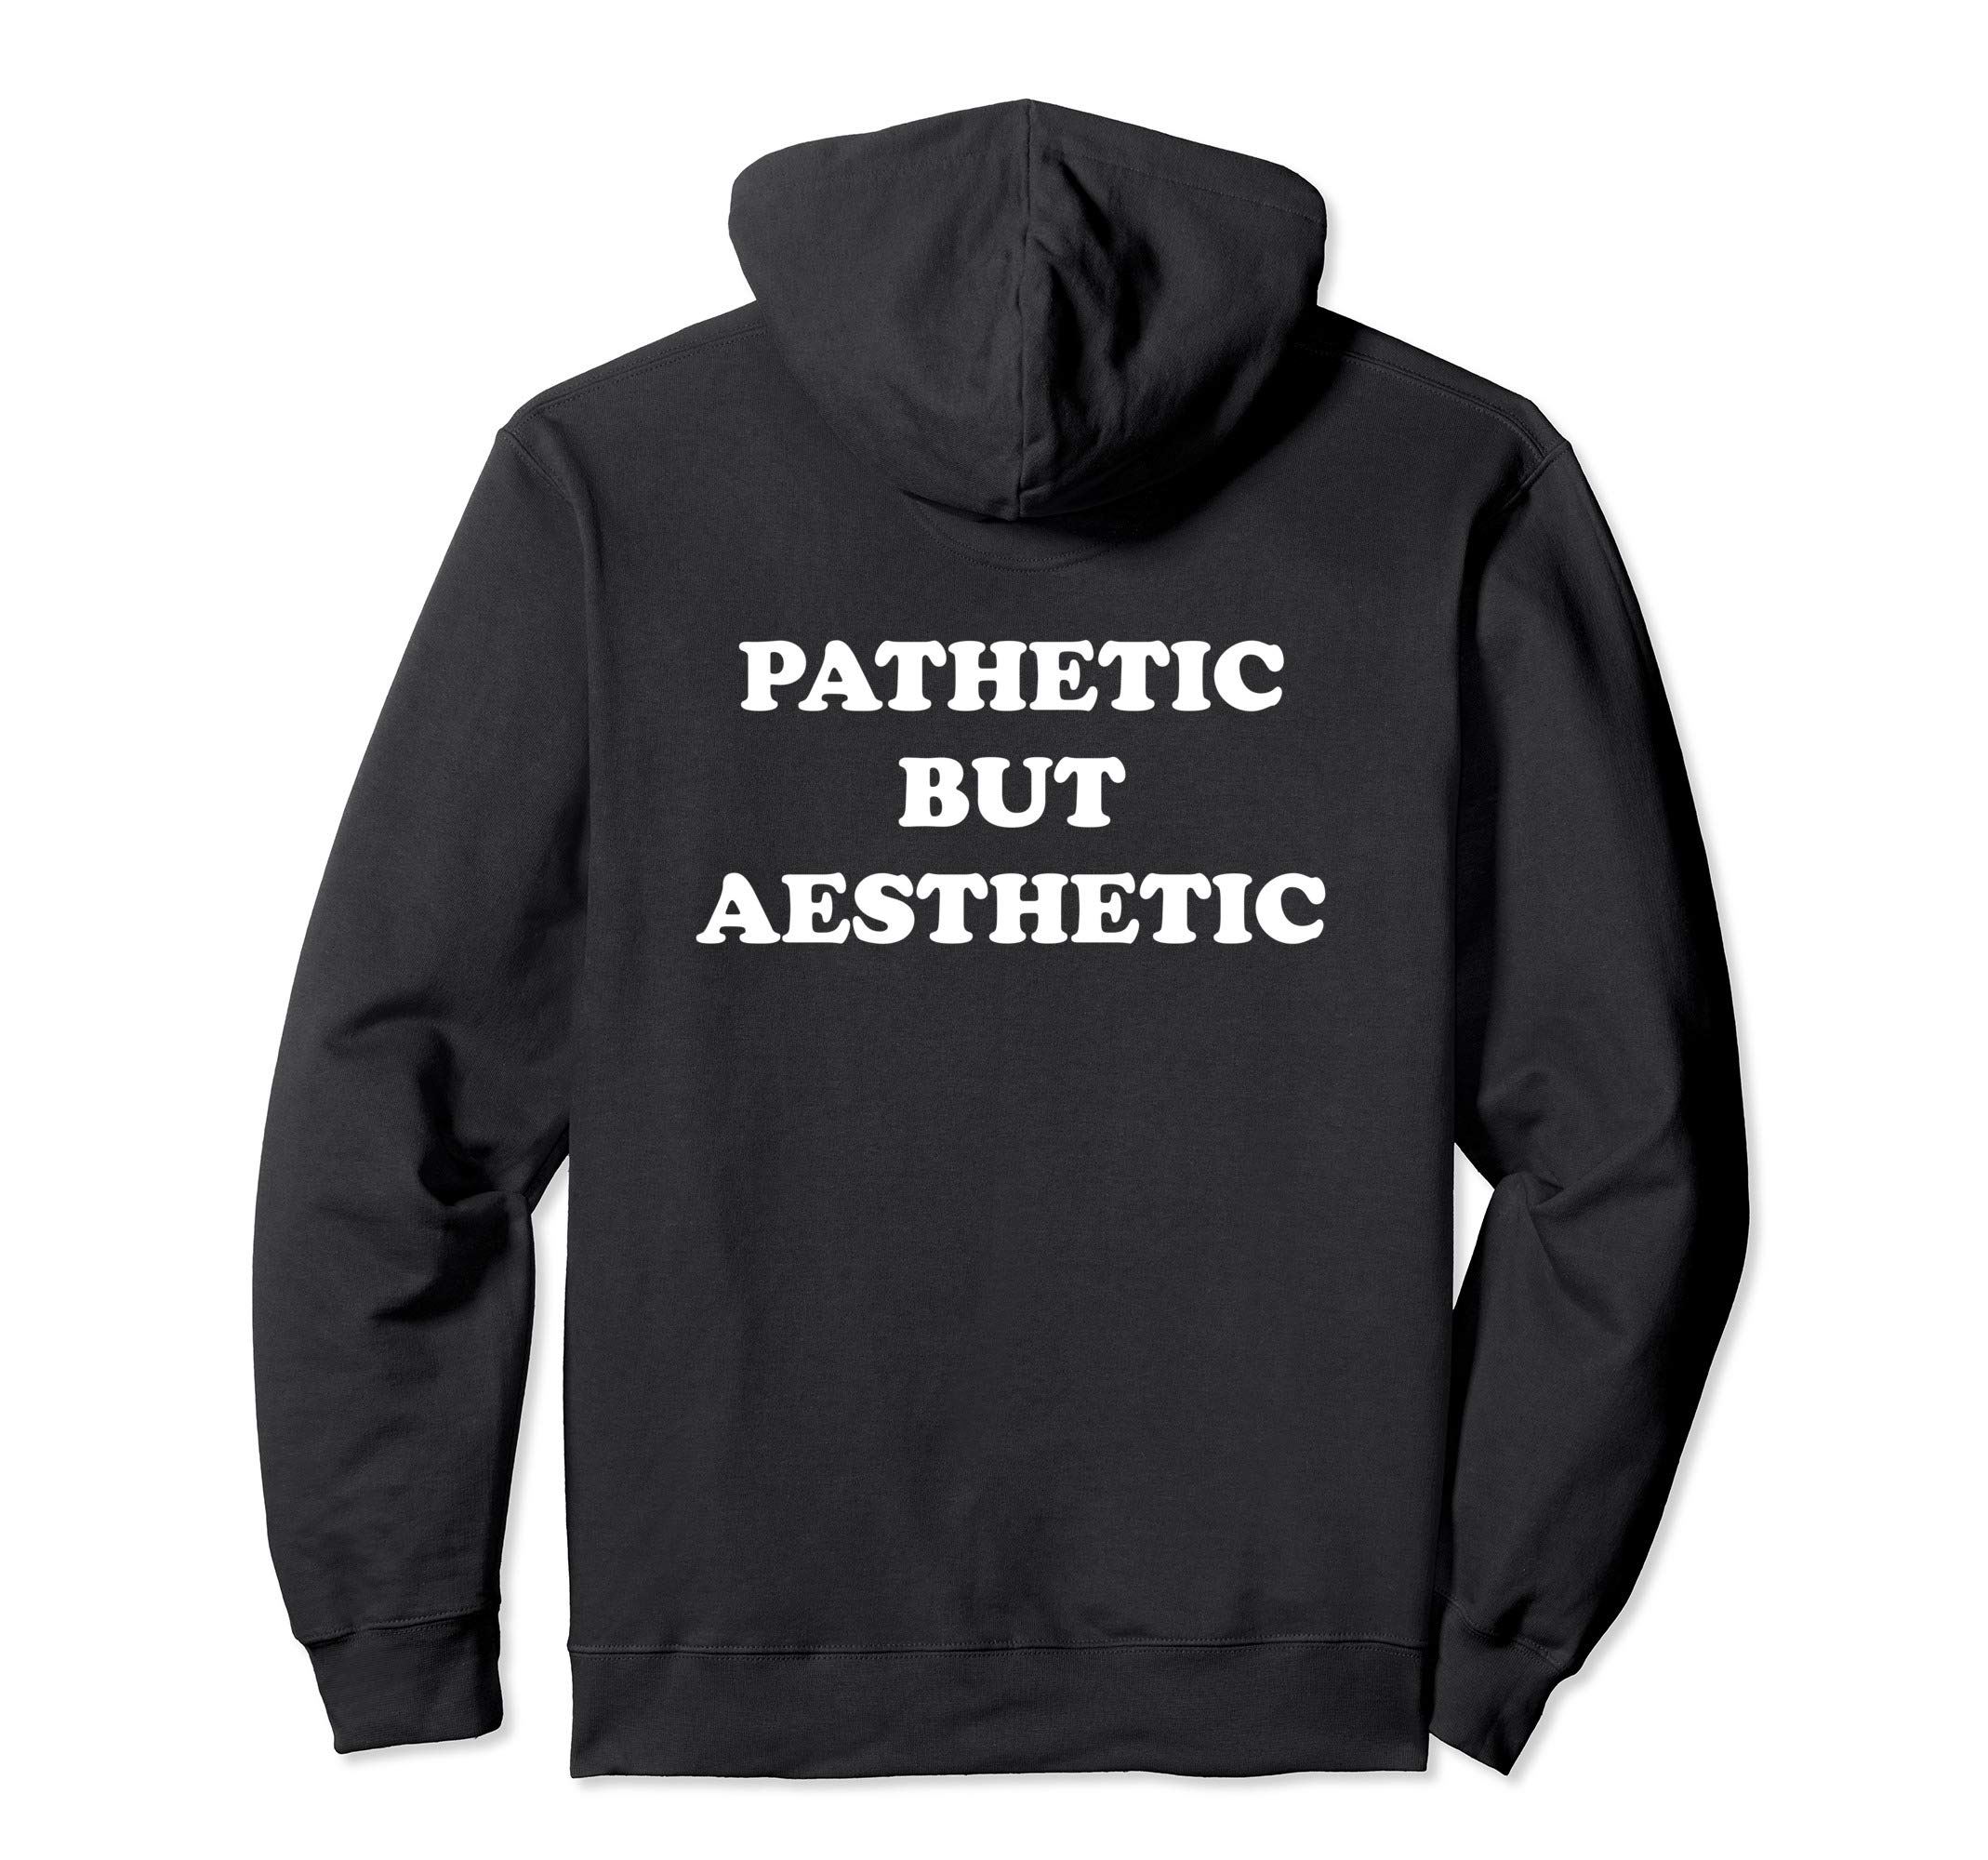 Pathetic But Aesthetic - Aesthetic Fashion Hoodie by Aesthetic Choice